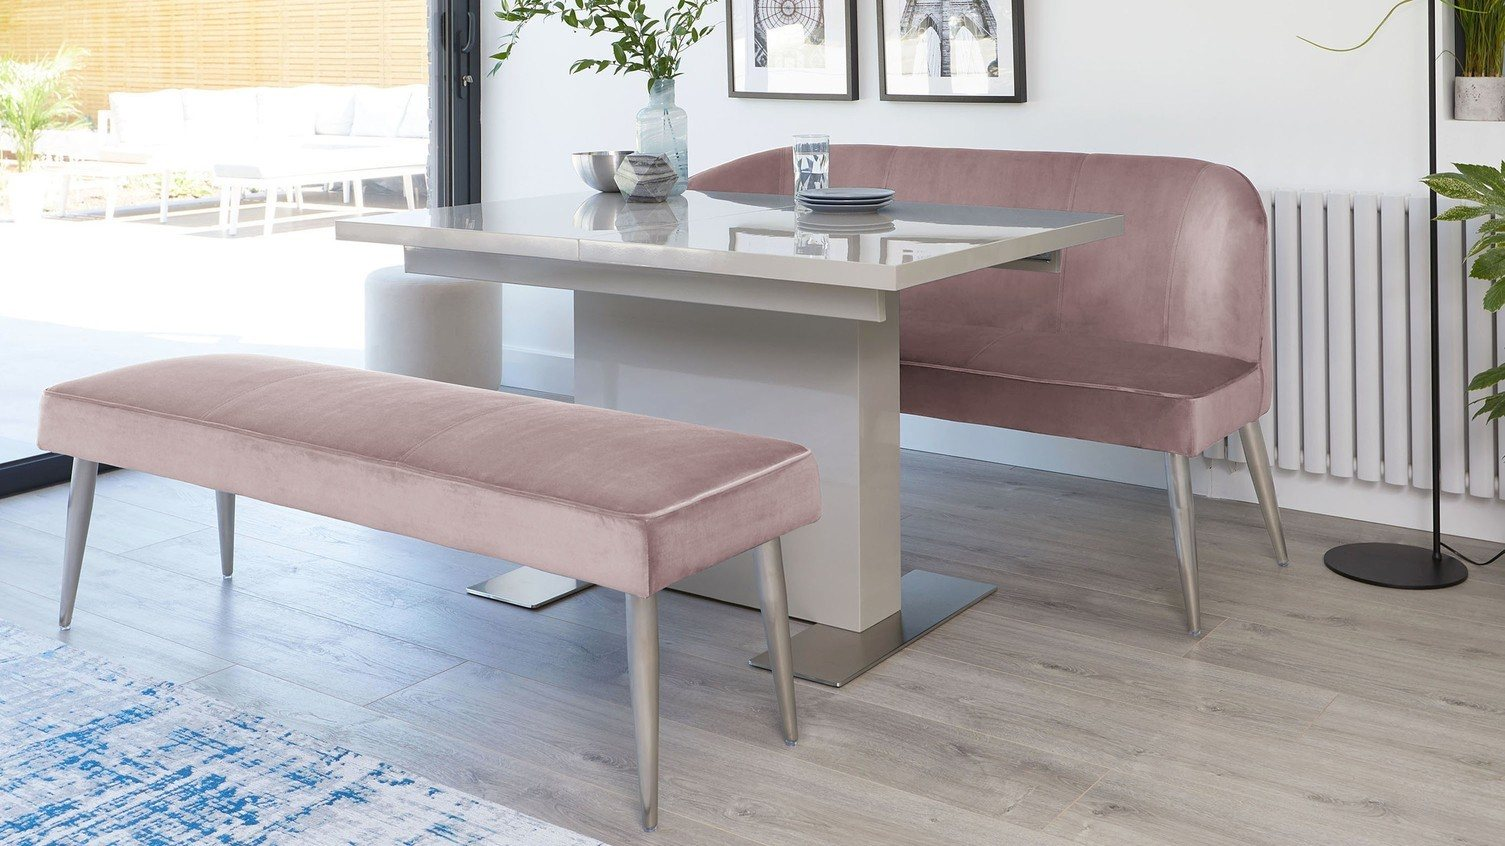 Sanza Grey Gloss and Mellow Blush Velvet Bench Dining Set